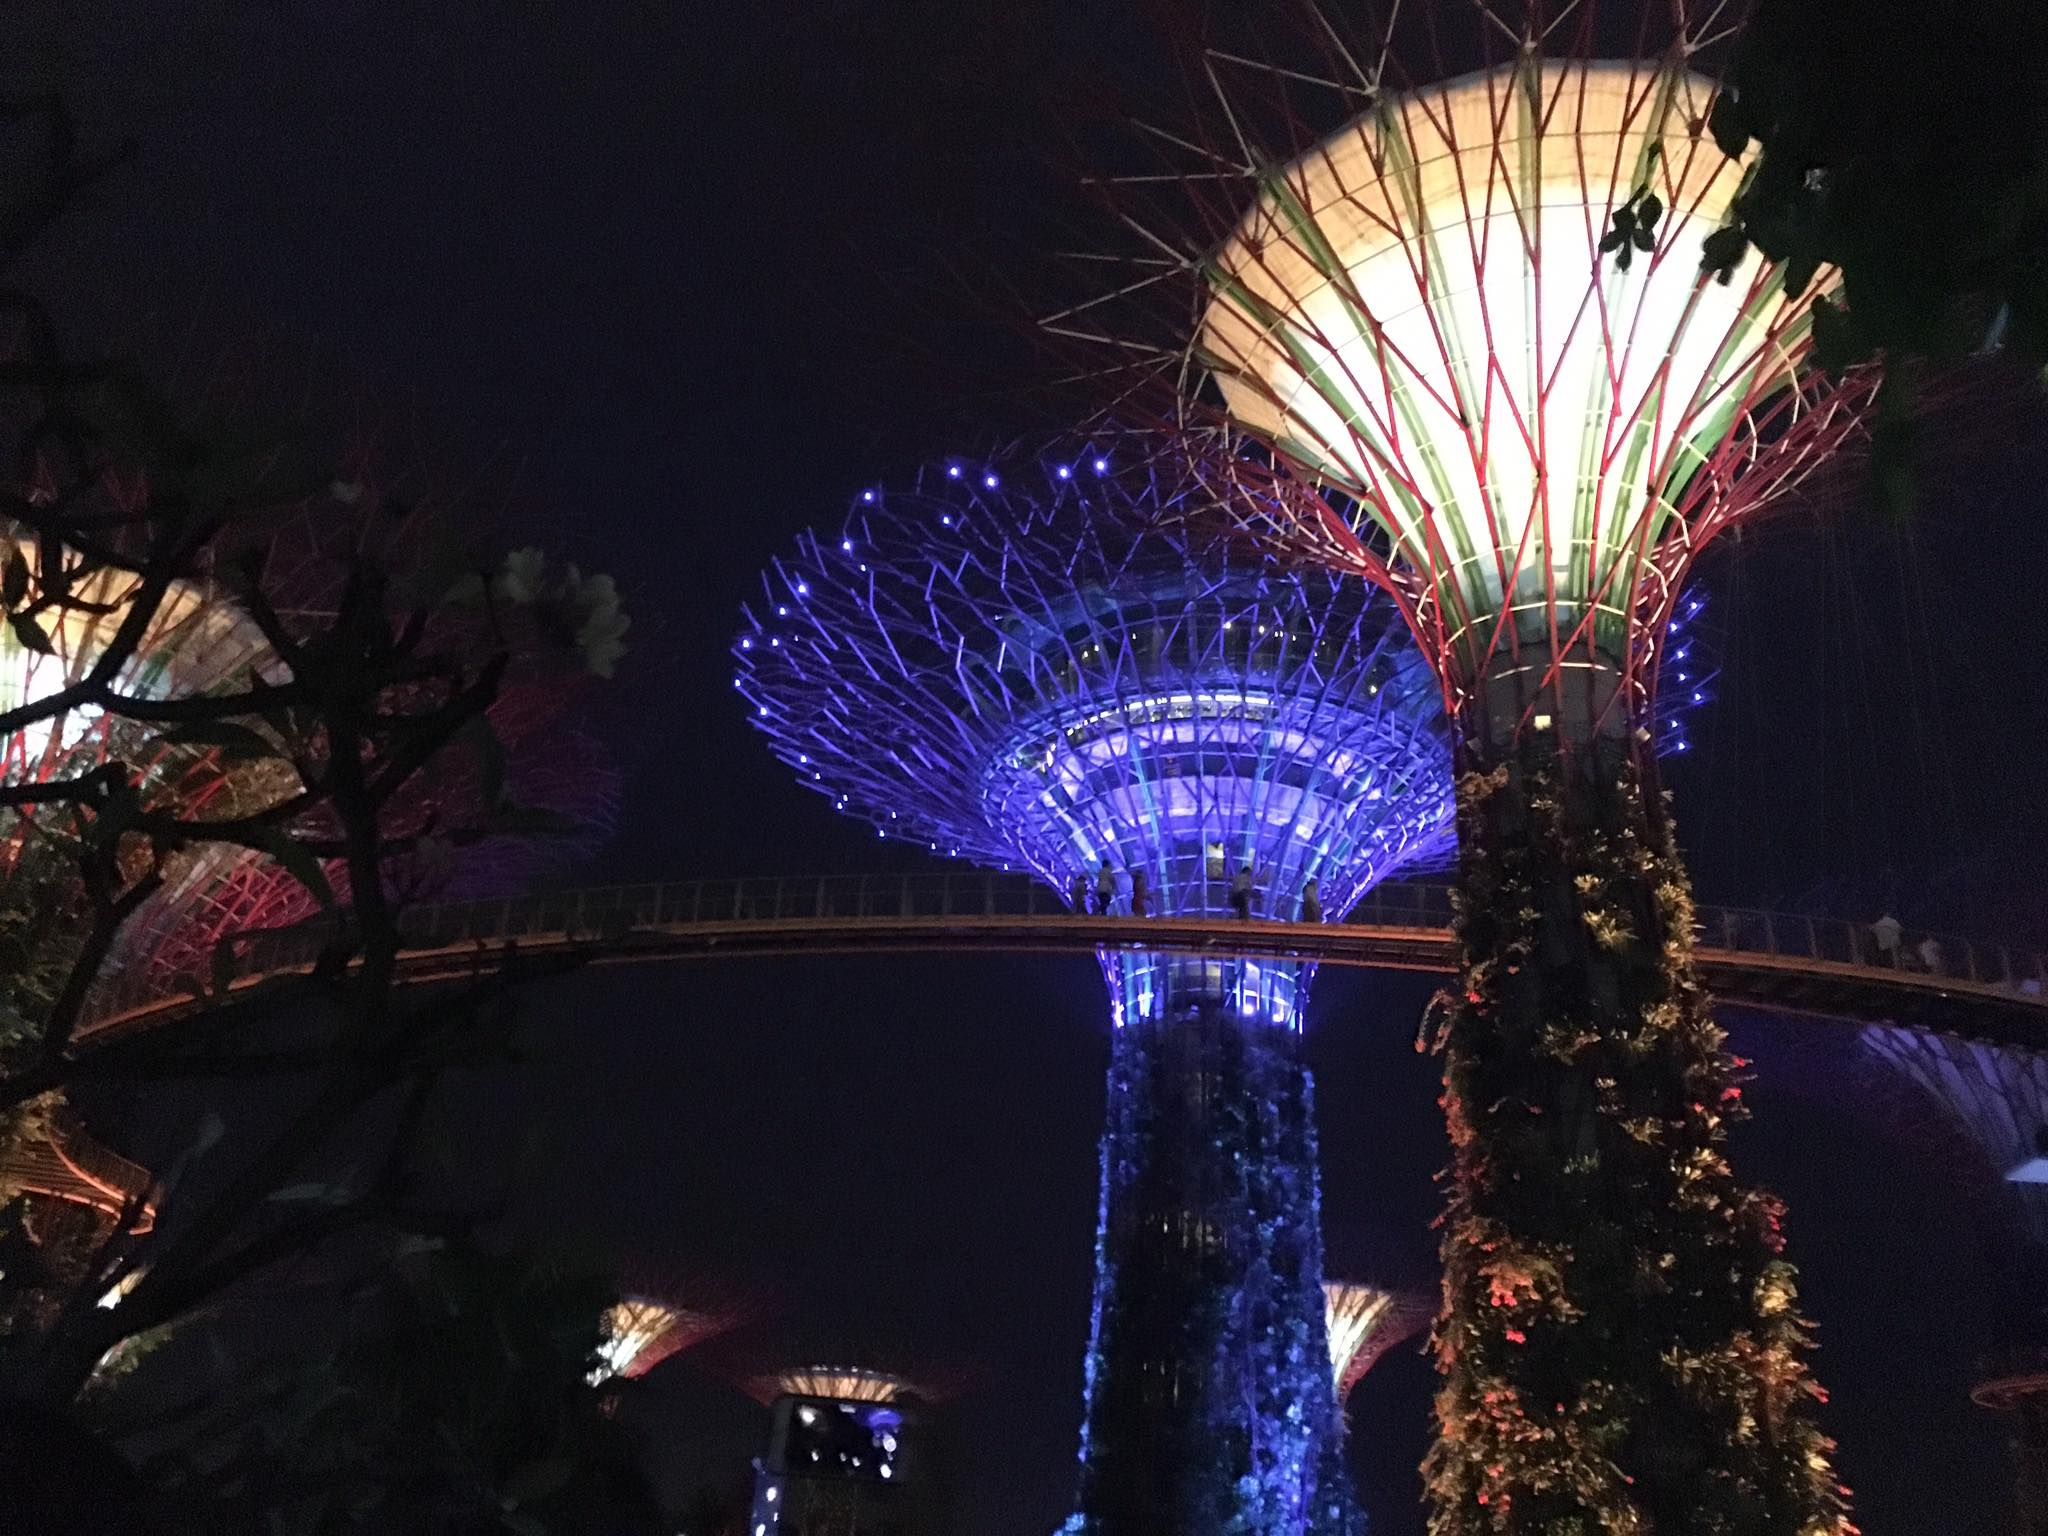 The Super Trees in Garden by the Bay